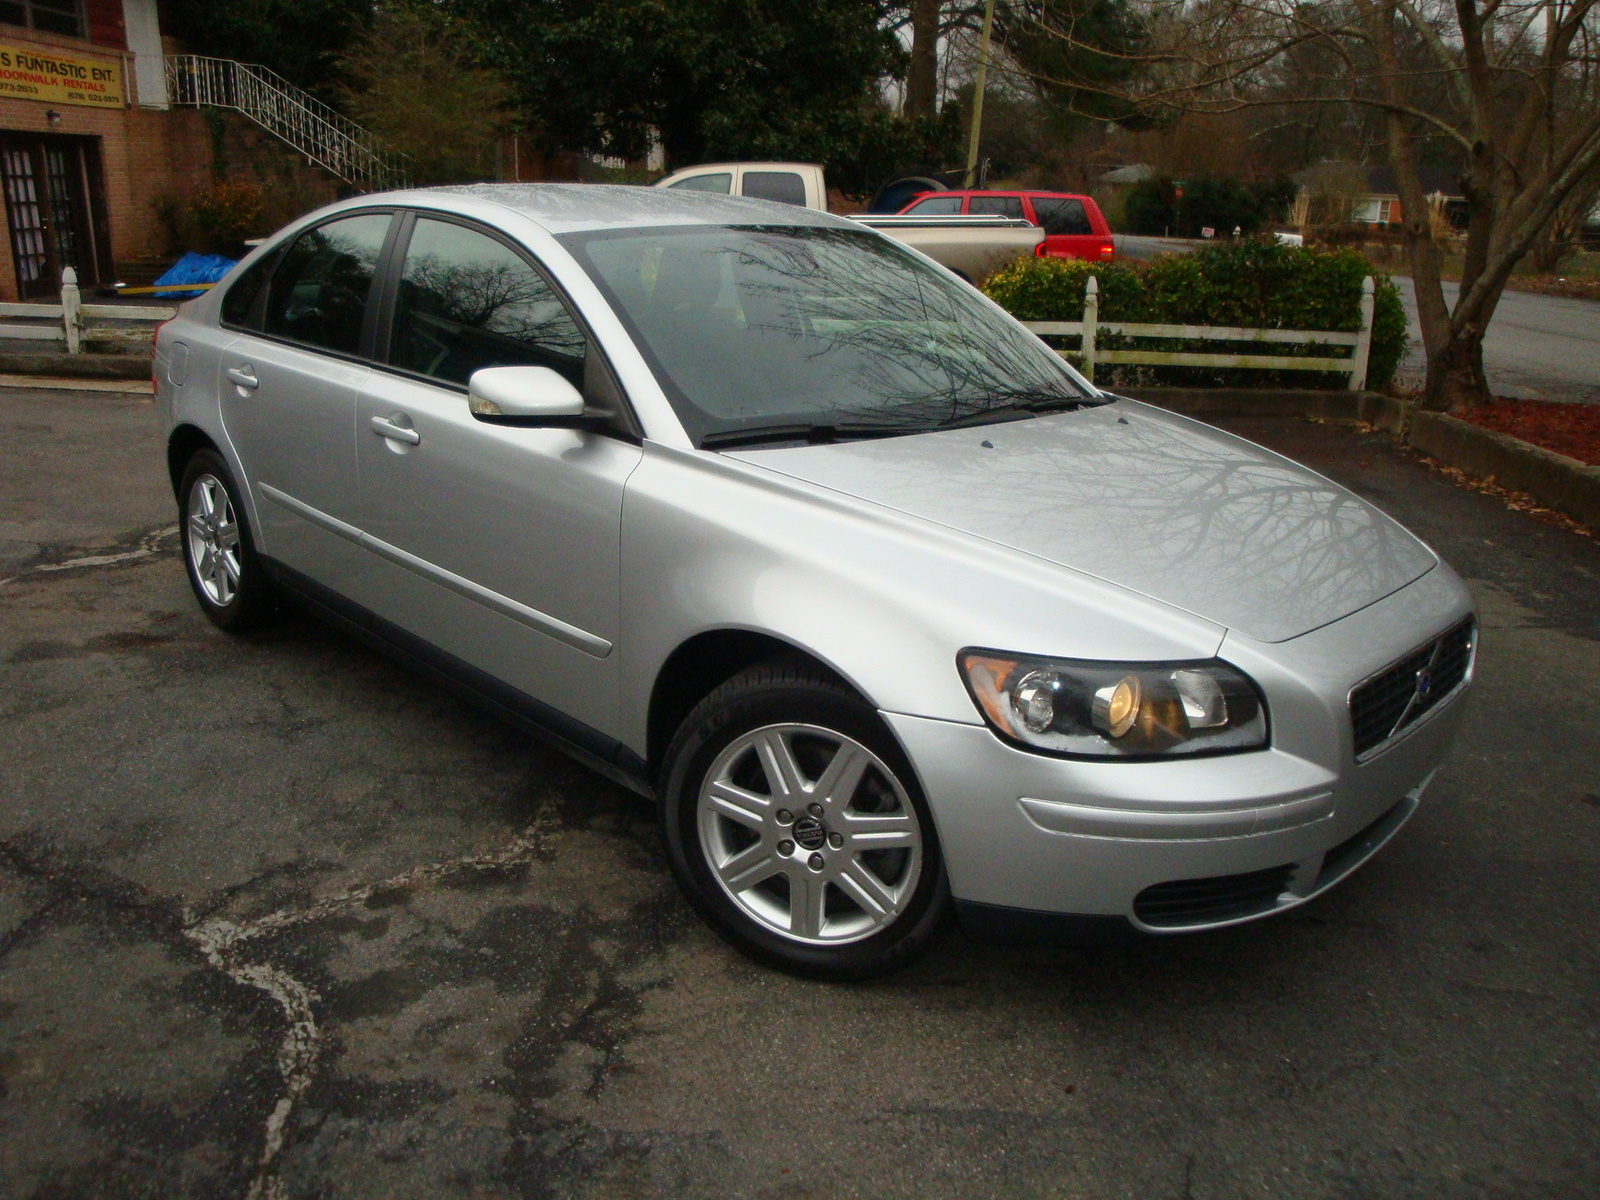 Volvo S40 Sedan Joins V50 Wagon in U.S.-Cancellation-Ville | Car and